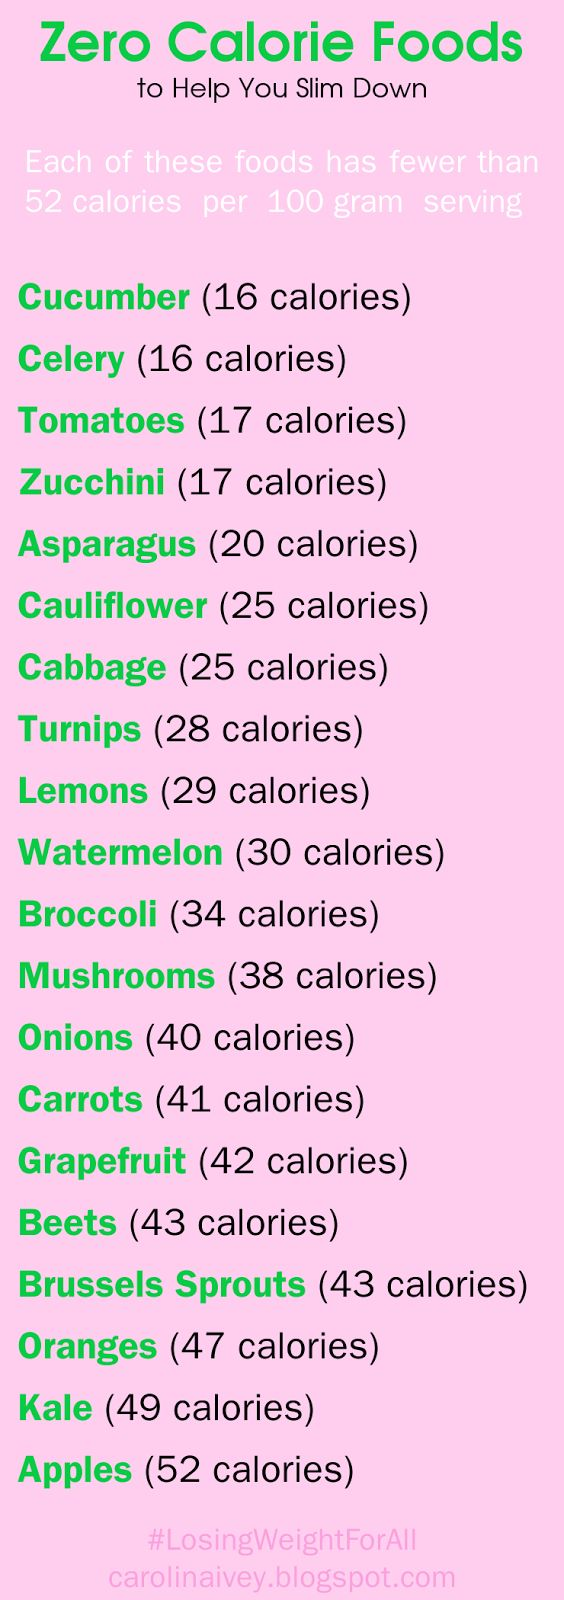 20 Zero Calorie Foods.| Posted By: advancedweightlosstips.com |